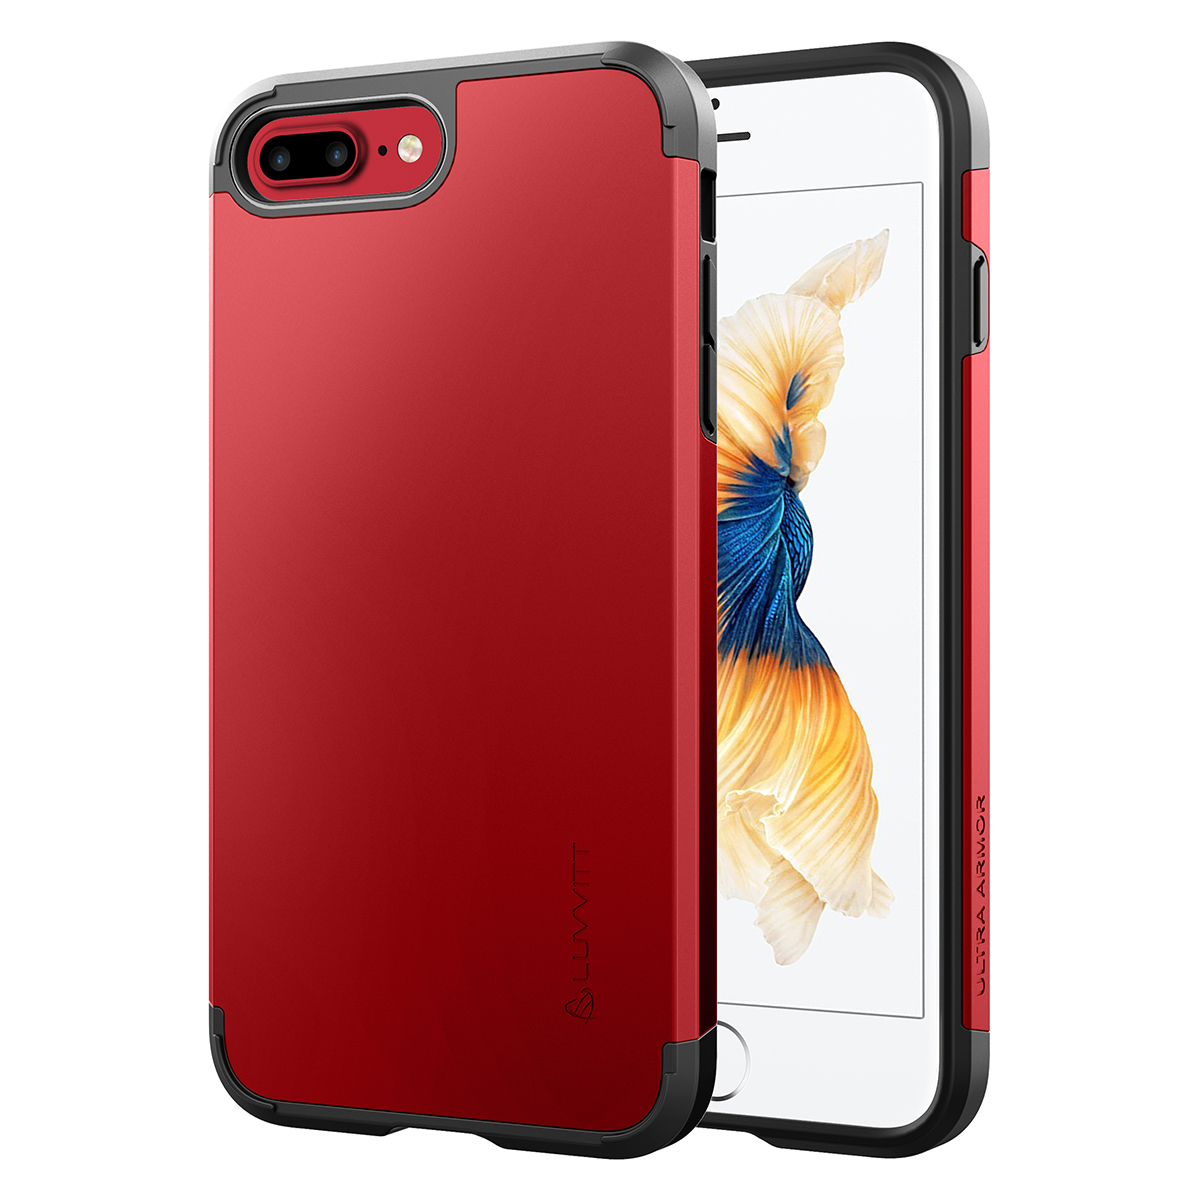 Luvvitt Ultra Armor iPhone 7 Plus / iPhone 8 Plus Case with Dual Layer Heavy Duty Protection and Air Bounce Technology for Apple iPhone 7 Plus (2016) /  iPhone 8 Plus (2017)